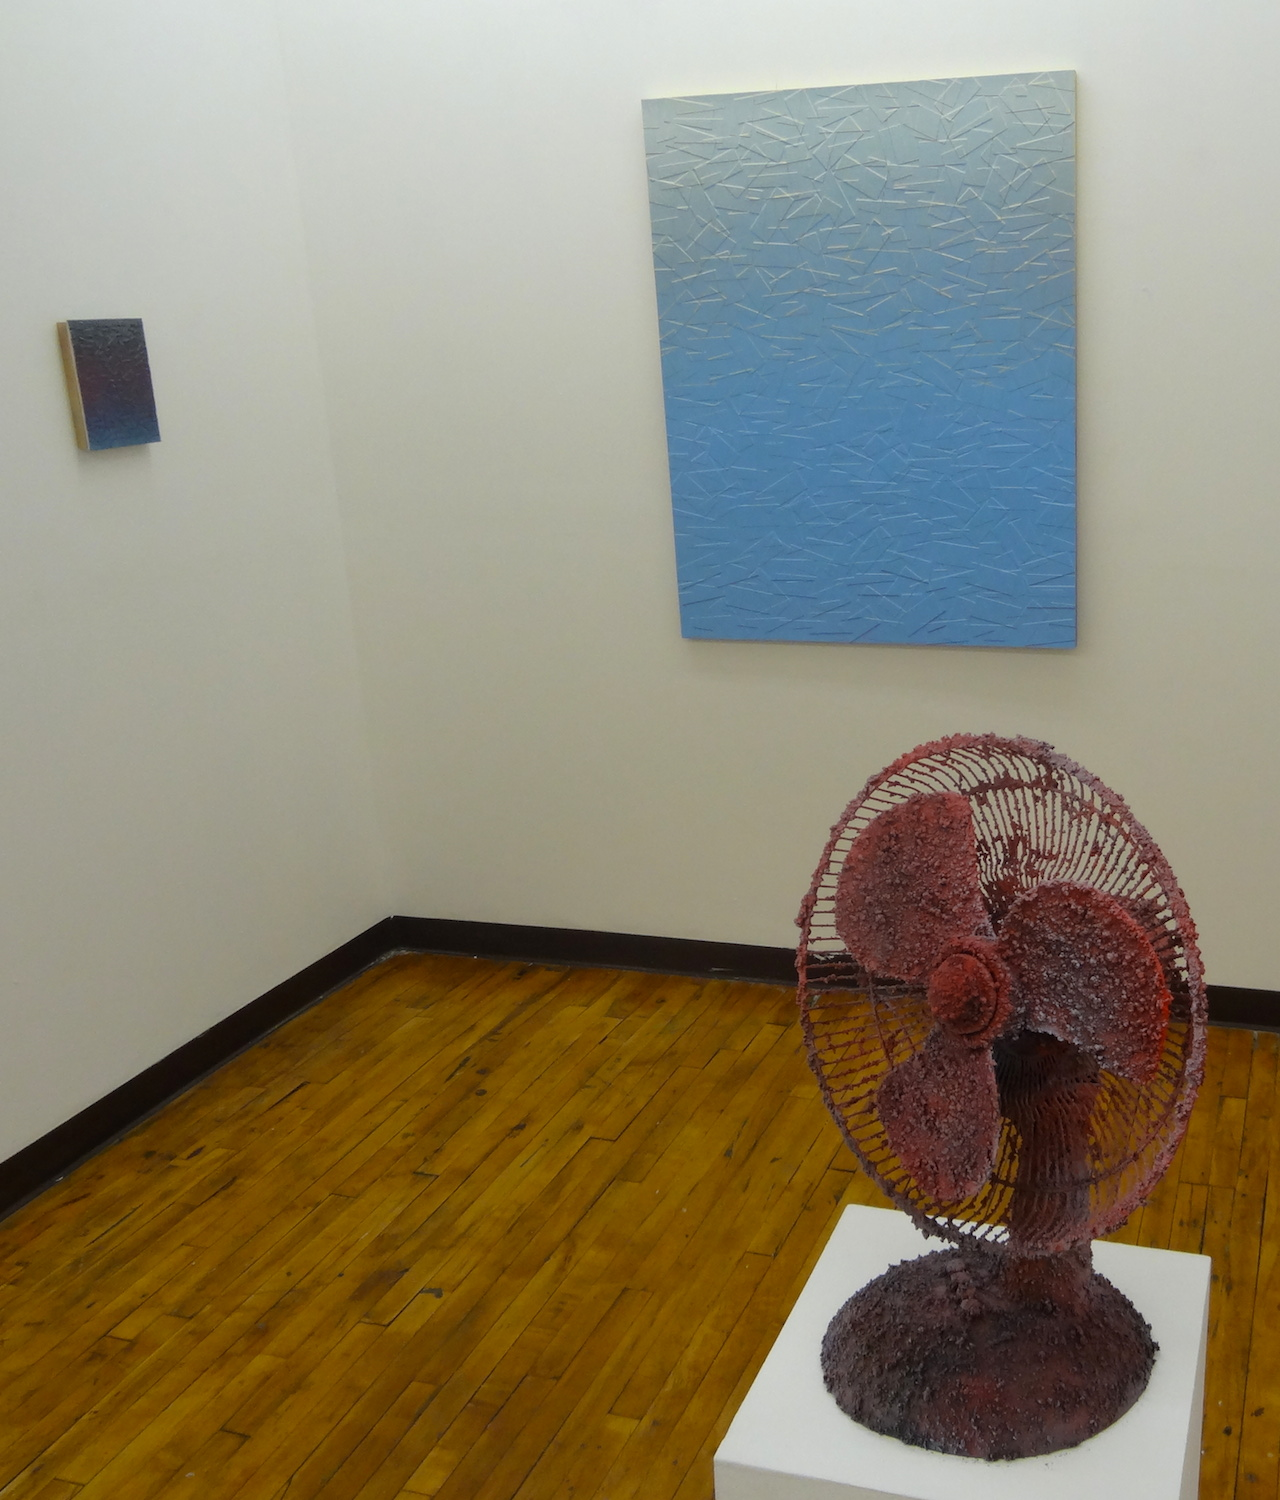 Works by Julian Lorber, presented by Associated Gallery, at The Active Space